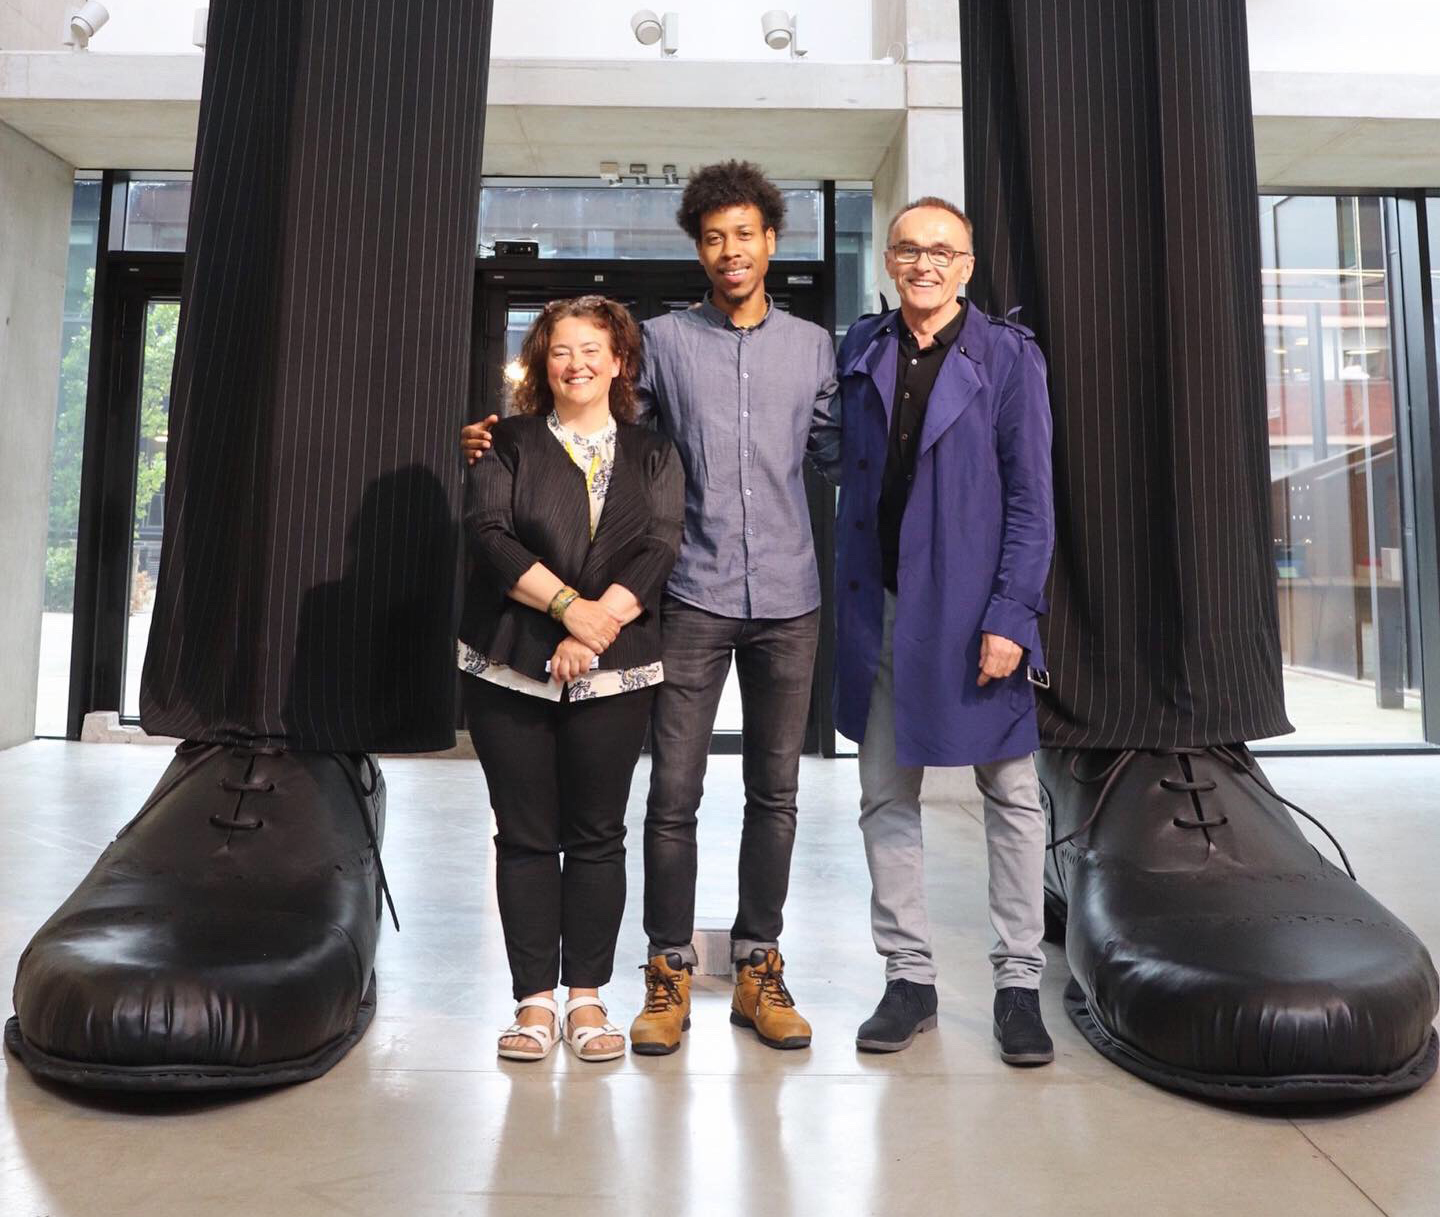 Penny Macbeth, Deputy Faculty Pro-Vice Chancellor and Dean of Manchester School of Art, with recent graduate and glassblower, Jahday Ford, and film director, Danny Boyle, at the Degree Show launch night [NO]